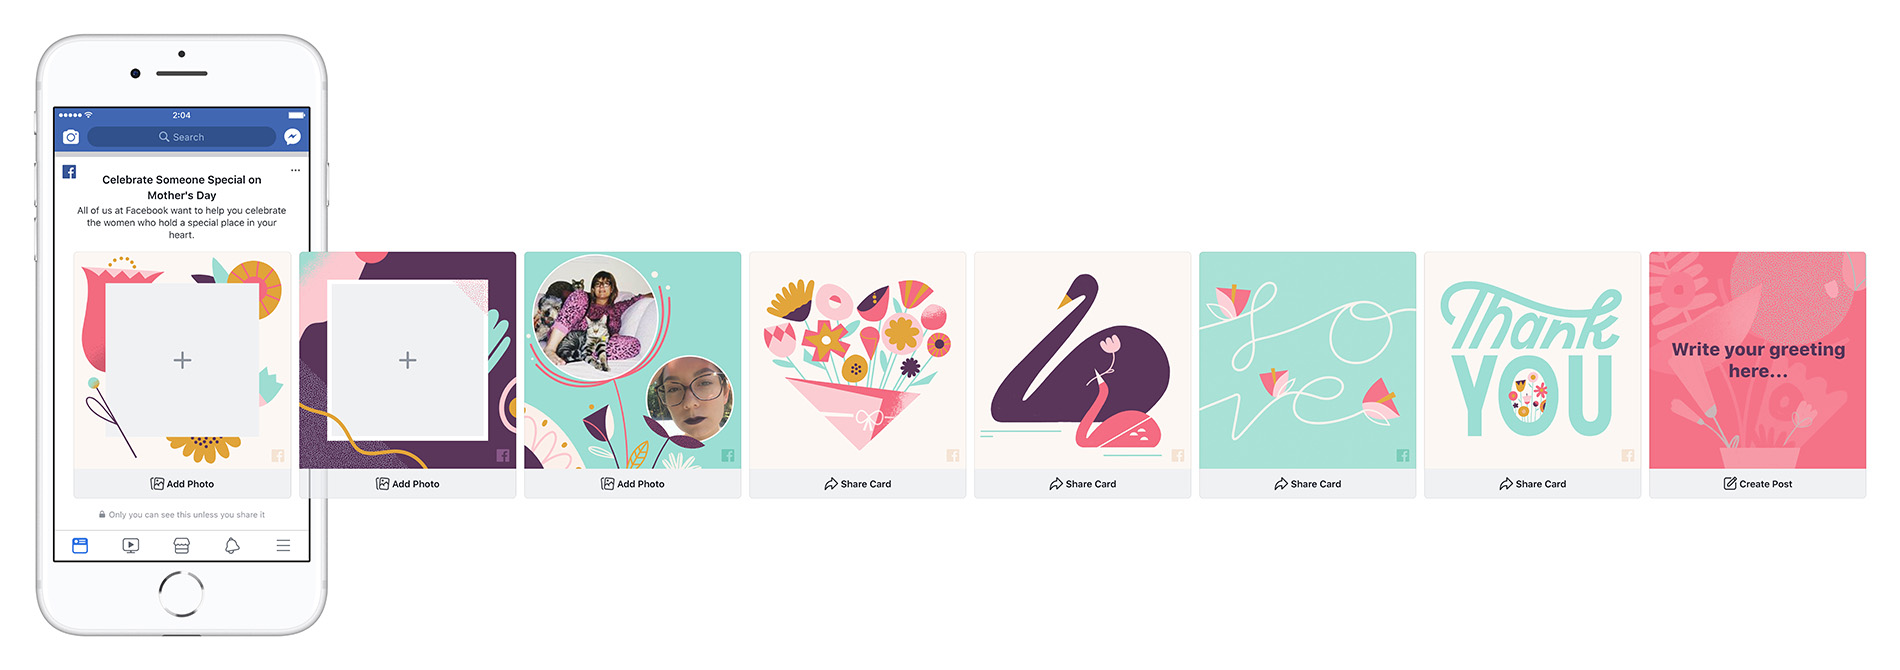 Facebook Cards for Mother's Day